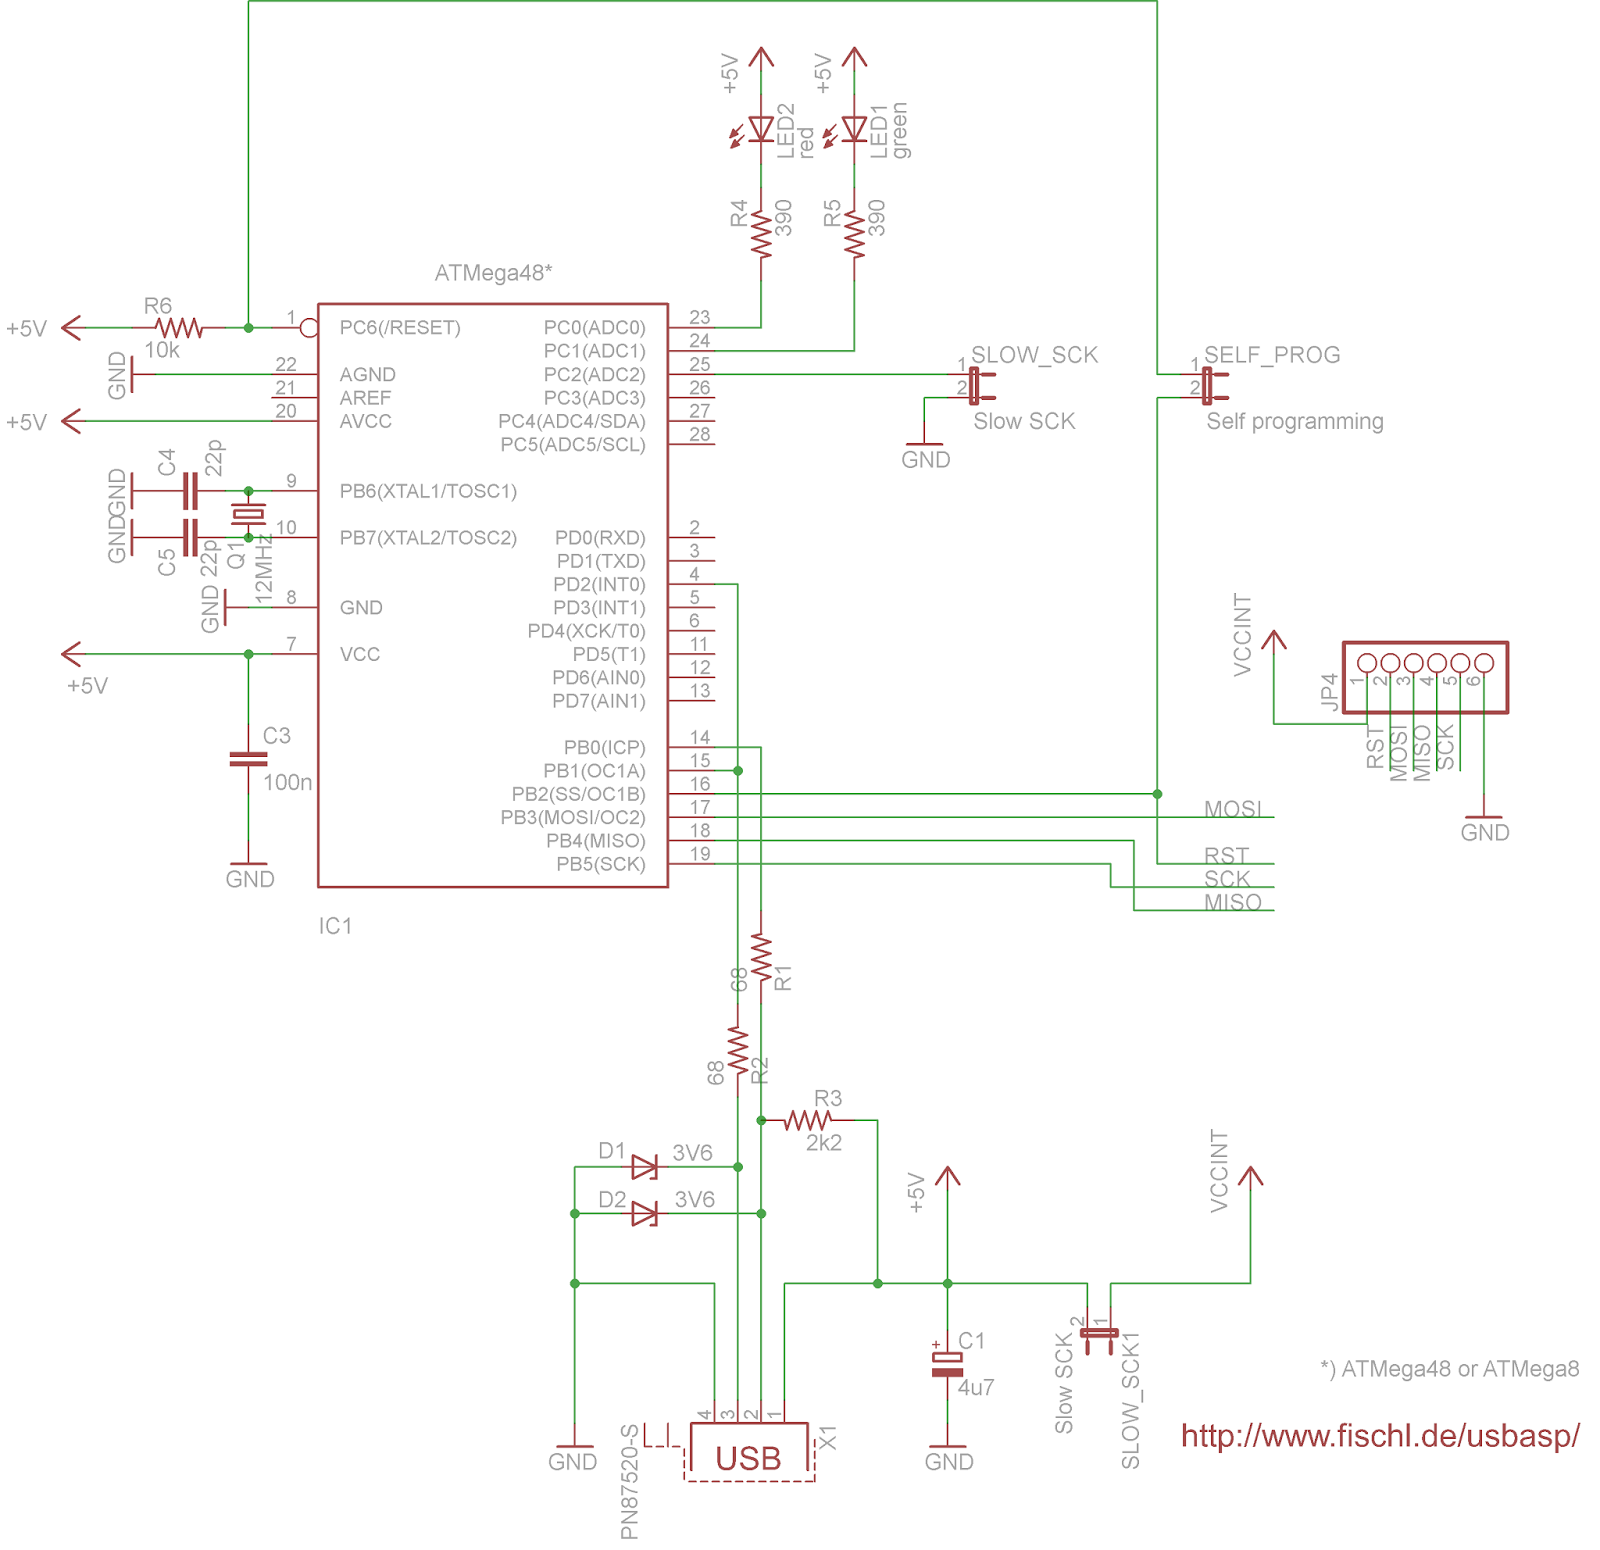 homemade usbasp programmer electronics enthusiast diy 3d here is the programmer schematic [ 1600 x 1550 Pixel ]